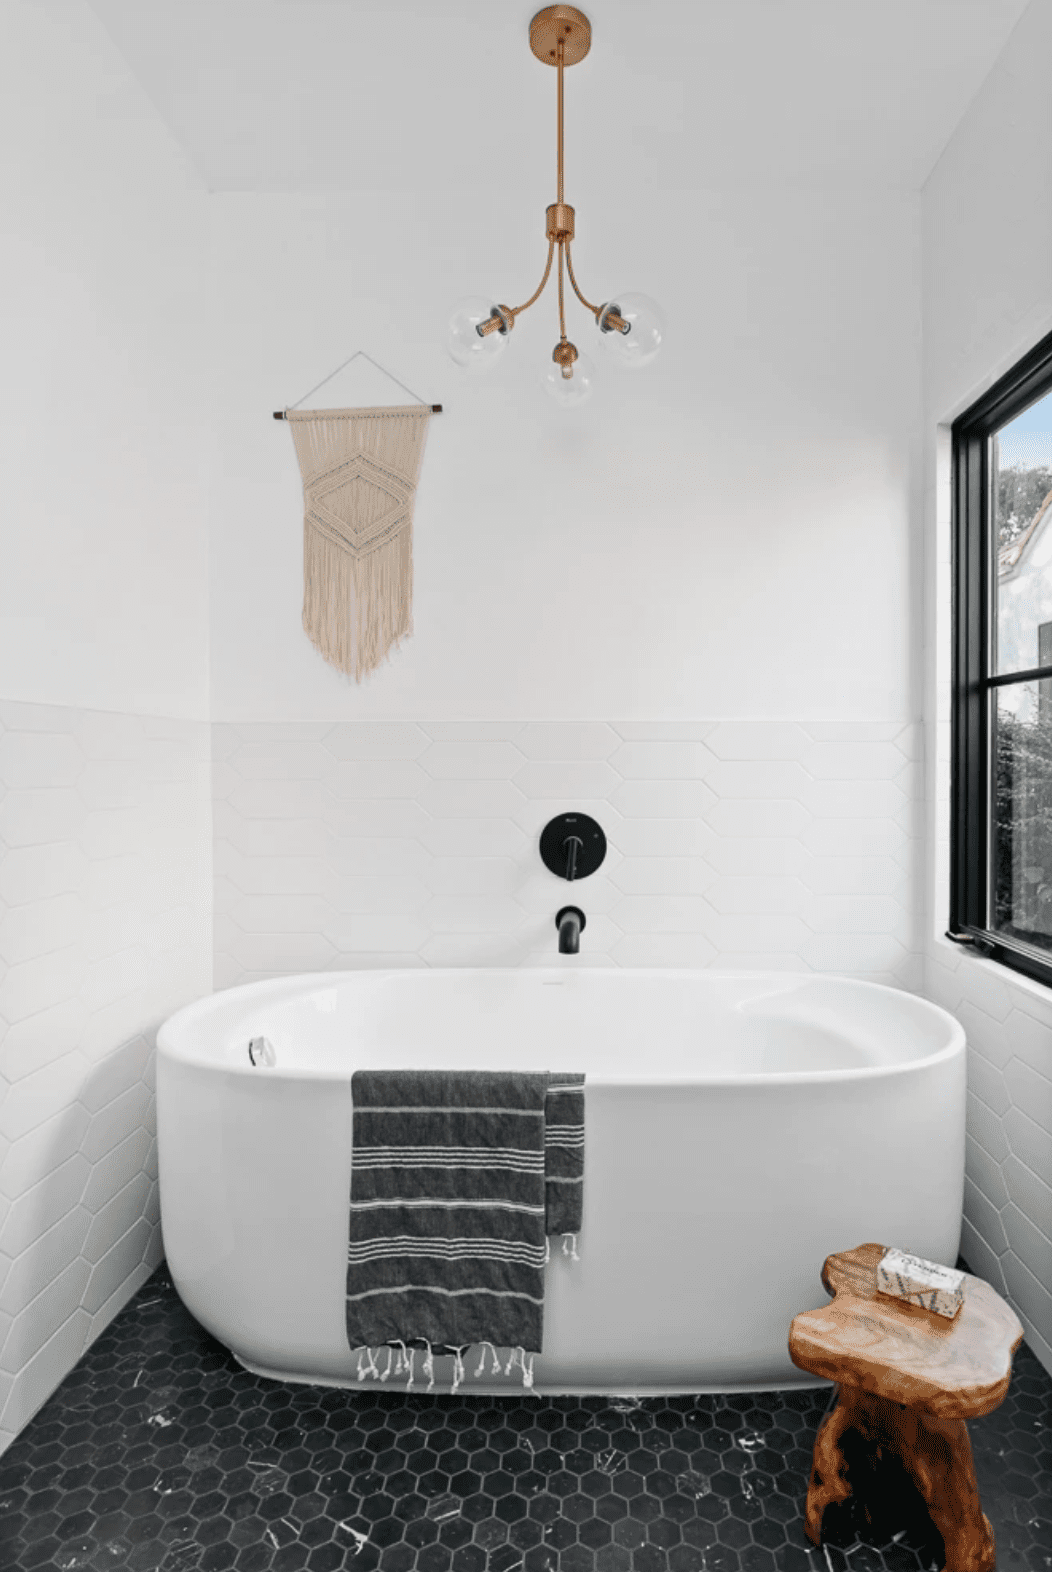 A bathroom with a modern lighting fixture, a freestanding tub, a black-tiled-lined floor, and several decorative accessories